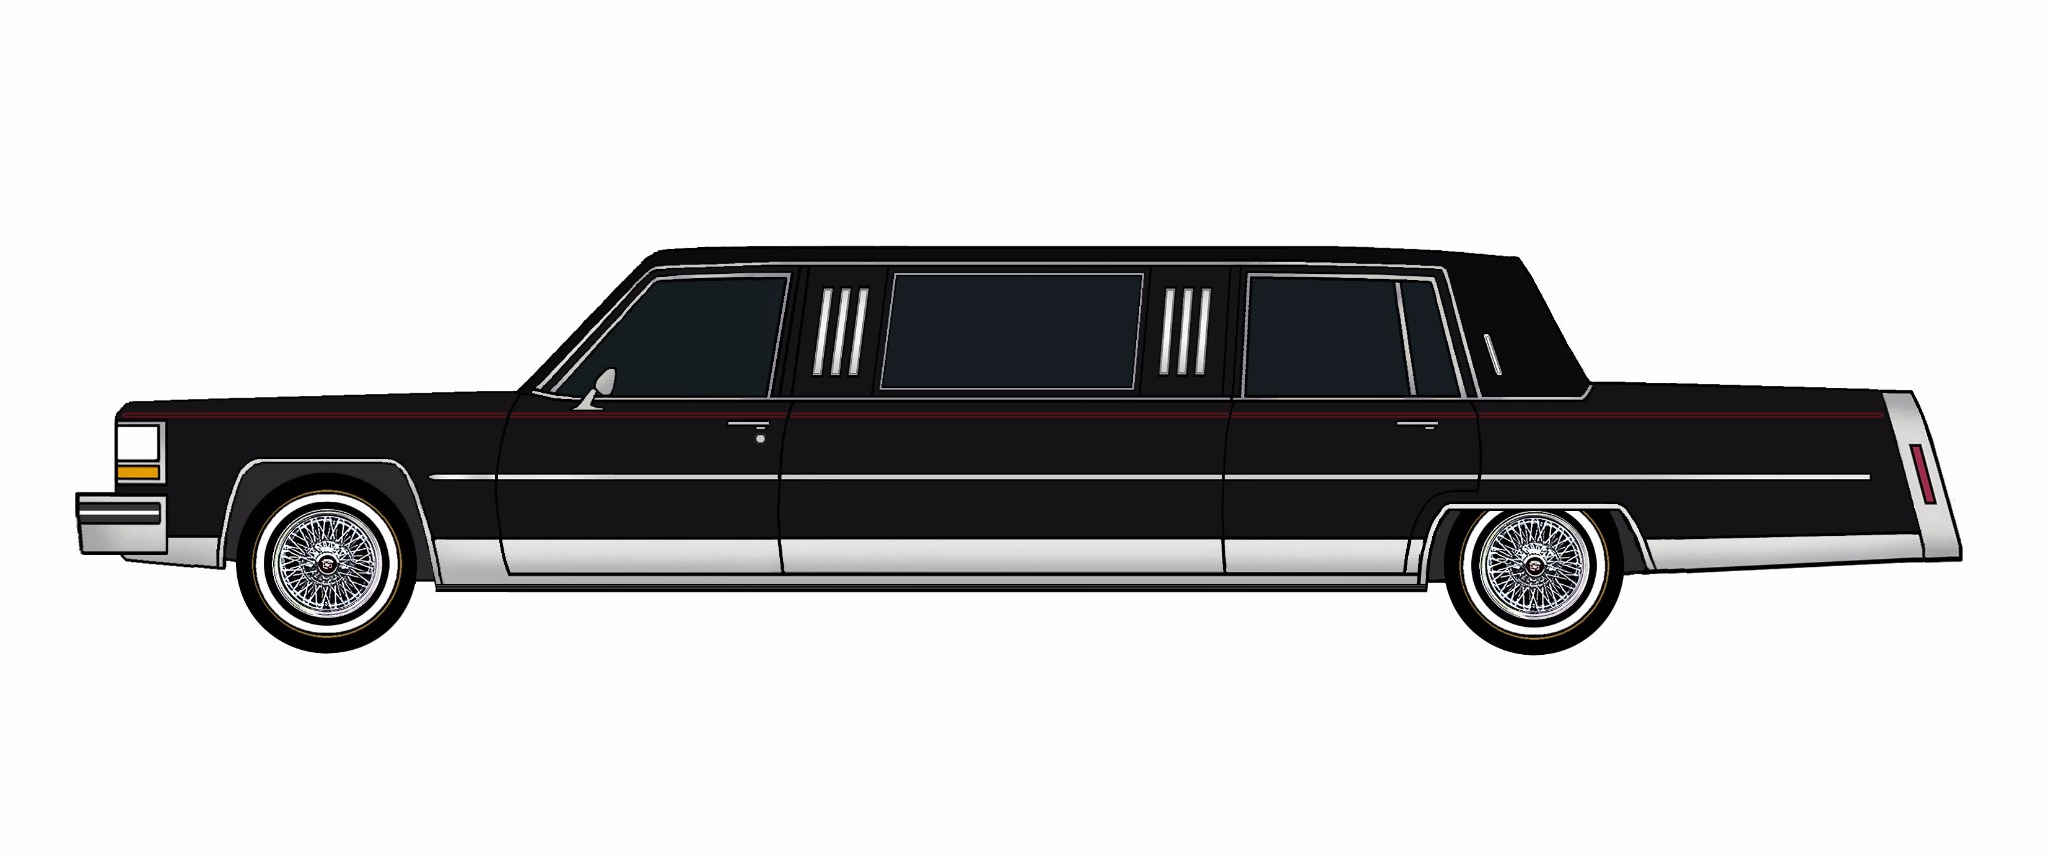 1984 Cadillac Fleetwood Brougham Limo BLACK